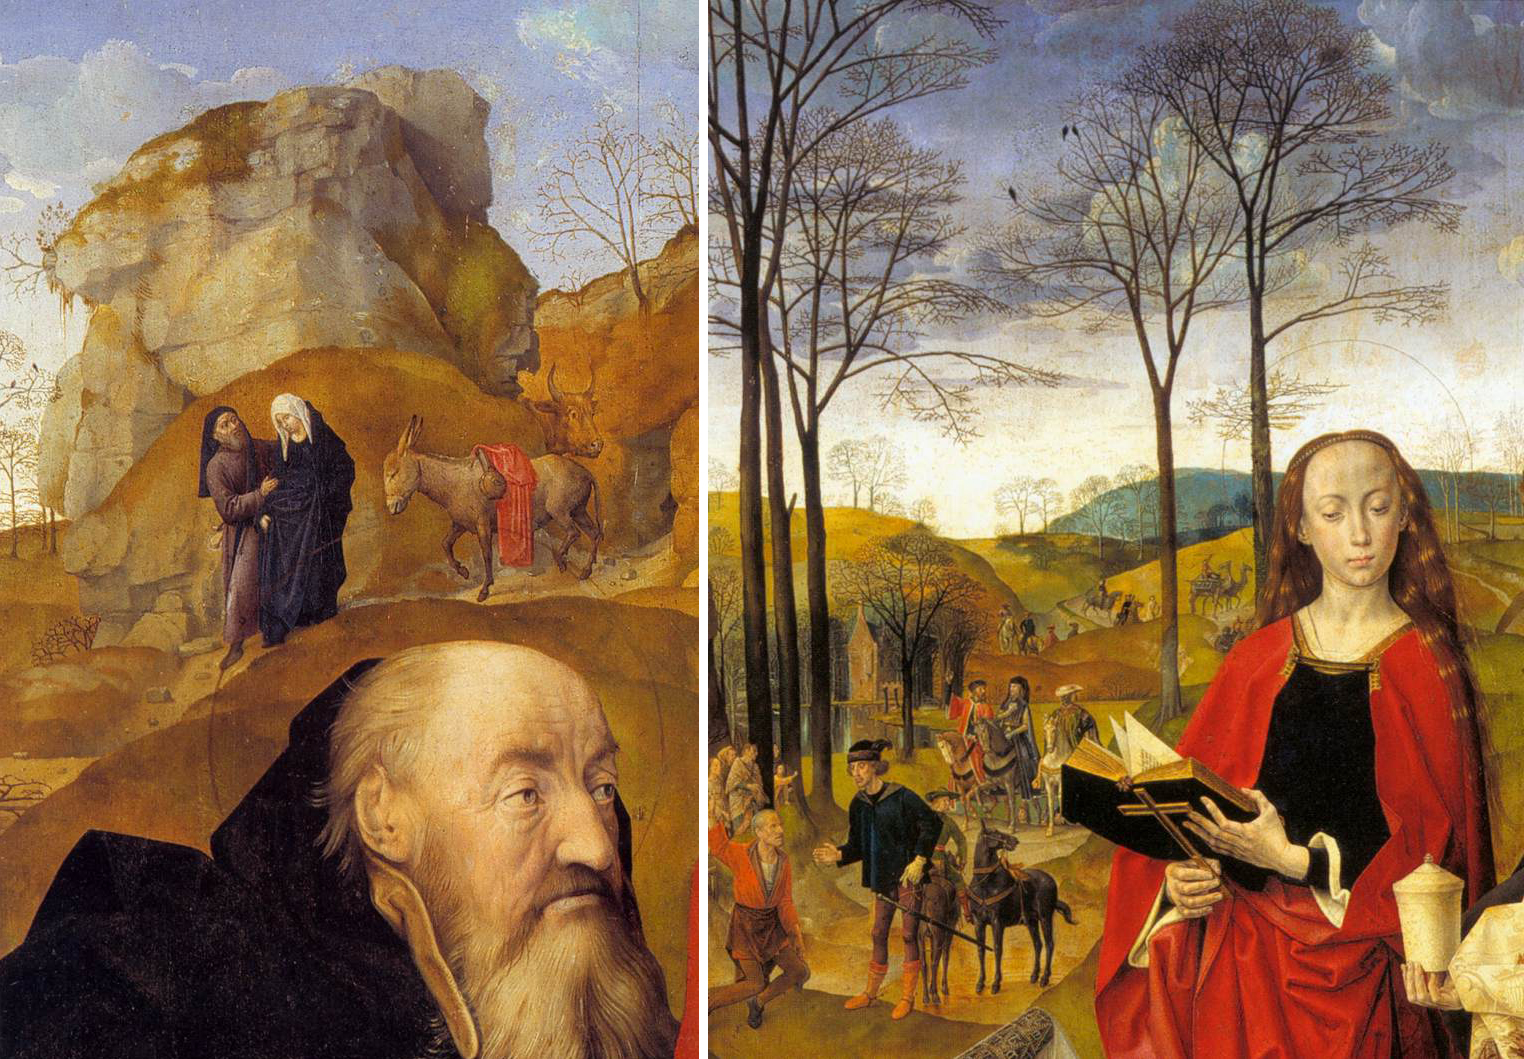 Hugo van der Goes, Portinari Altarpiece, details of the Holy Family and the Magi, c. 1476, oil on wood, 274 x 652 cm when open (Uffizi)